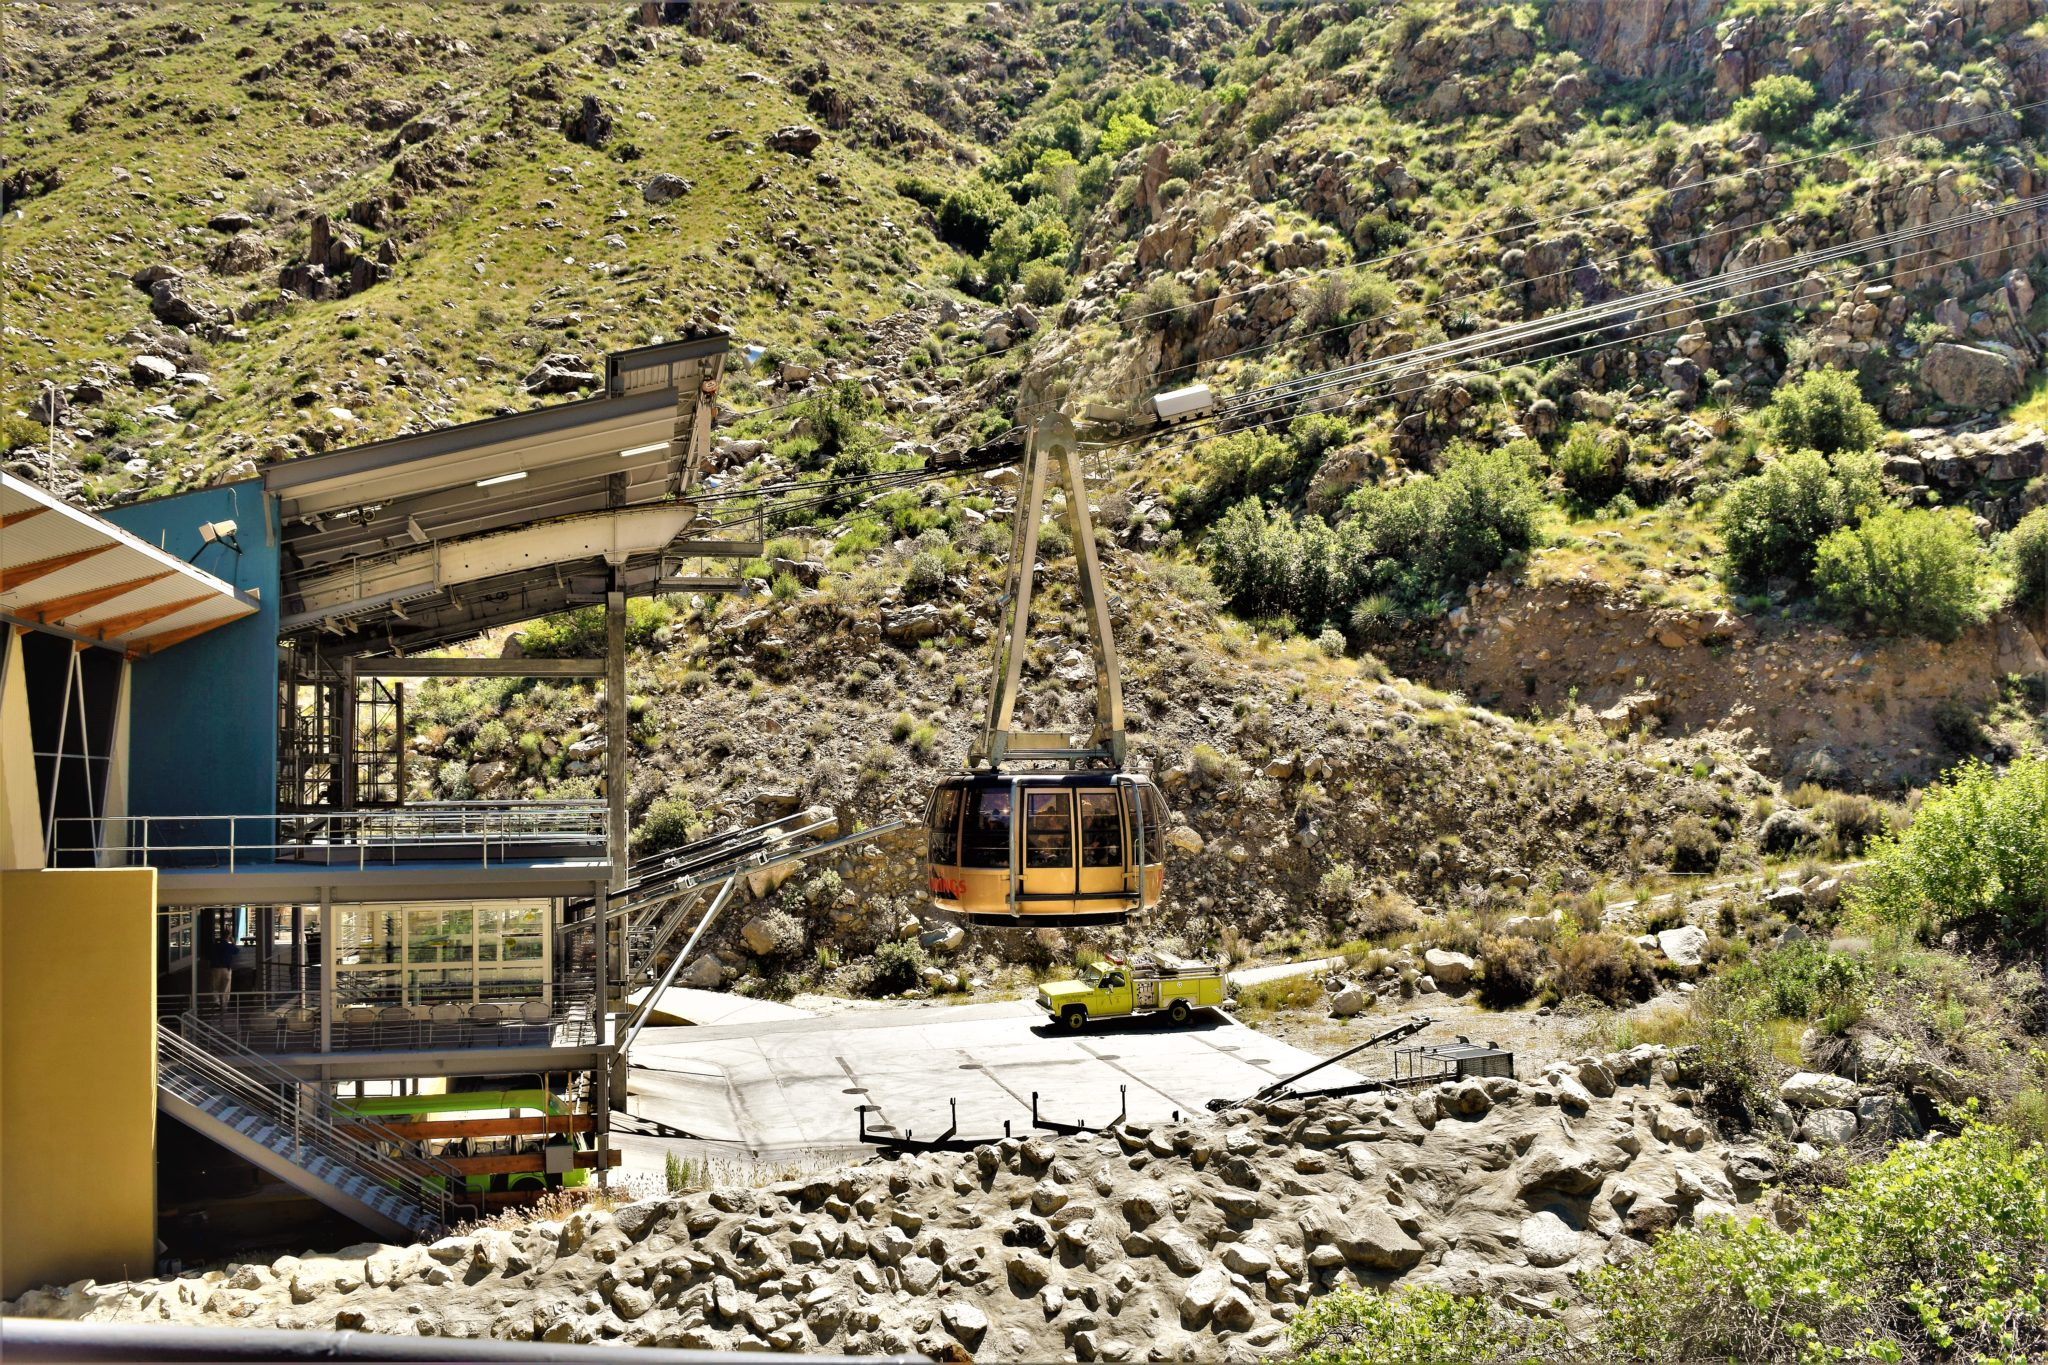 Rotating cable car, Palm Springs, California